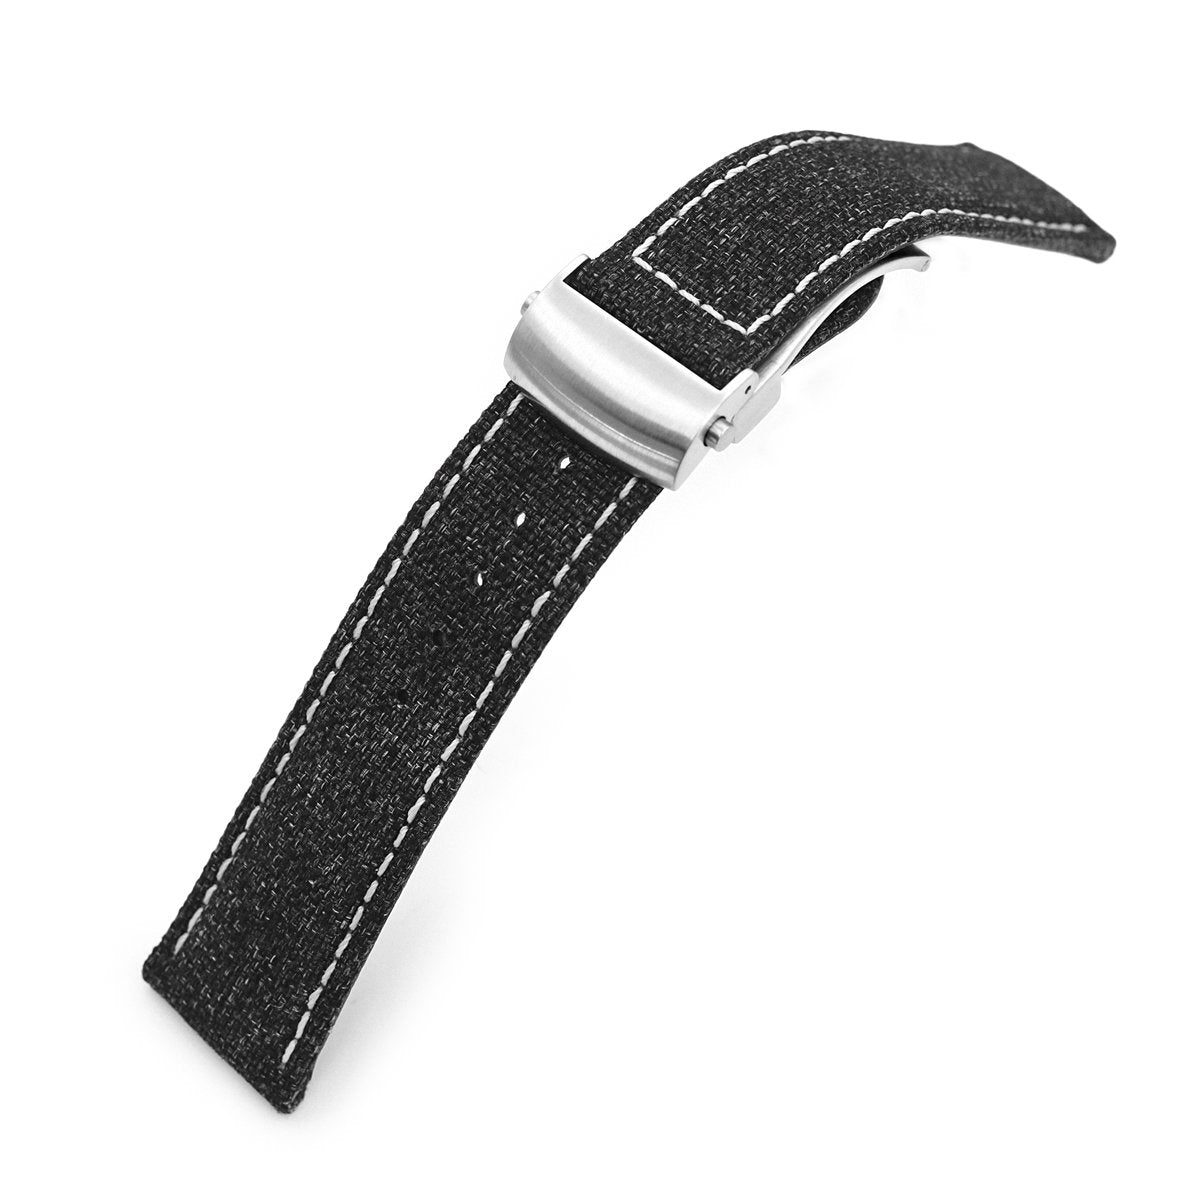 20mm or 22mm Black Canvas Watch Band Brushed Roller Deployant Buckle Beige Stitching Strapcode Watch Bands